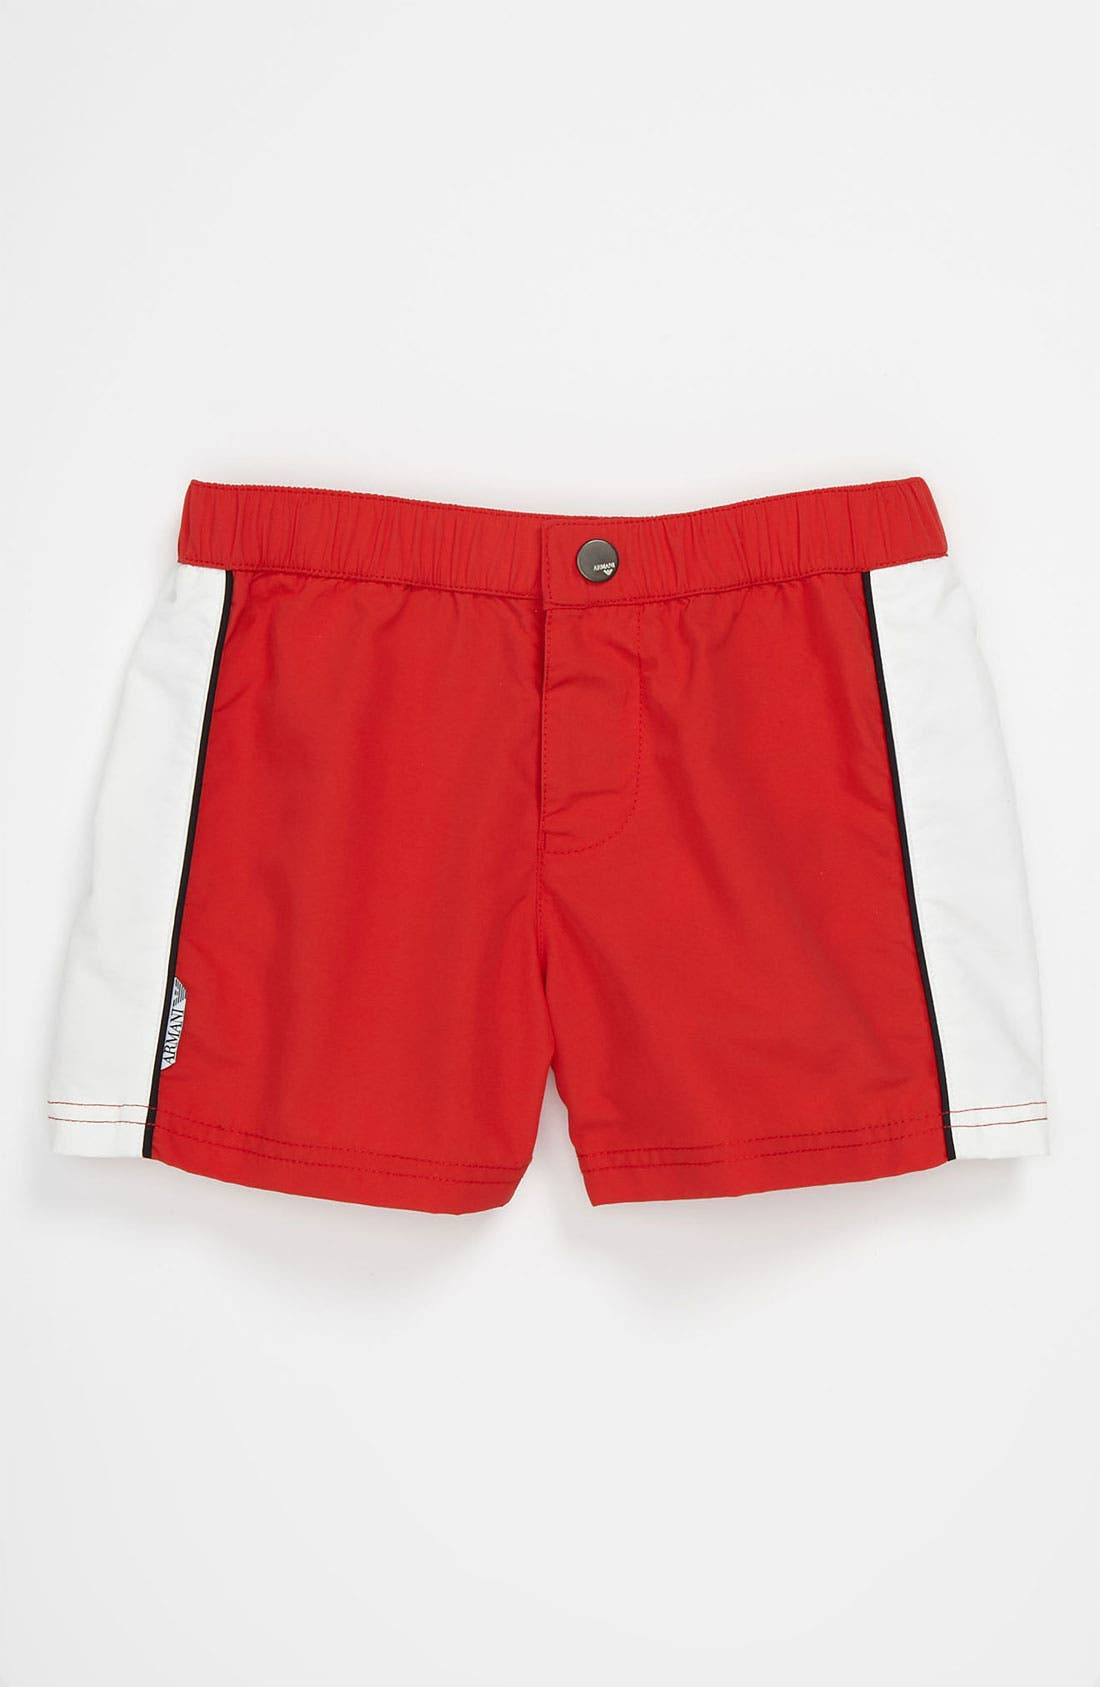 Alternate Image 1 Selected - Armani Junior Swim Trunks (Toddler & Little Boys)